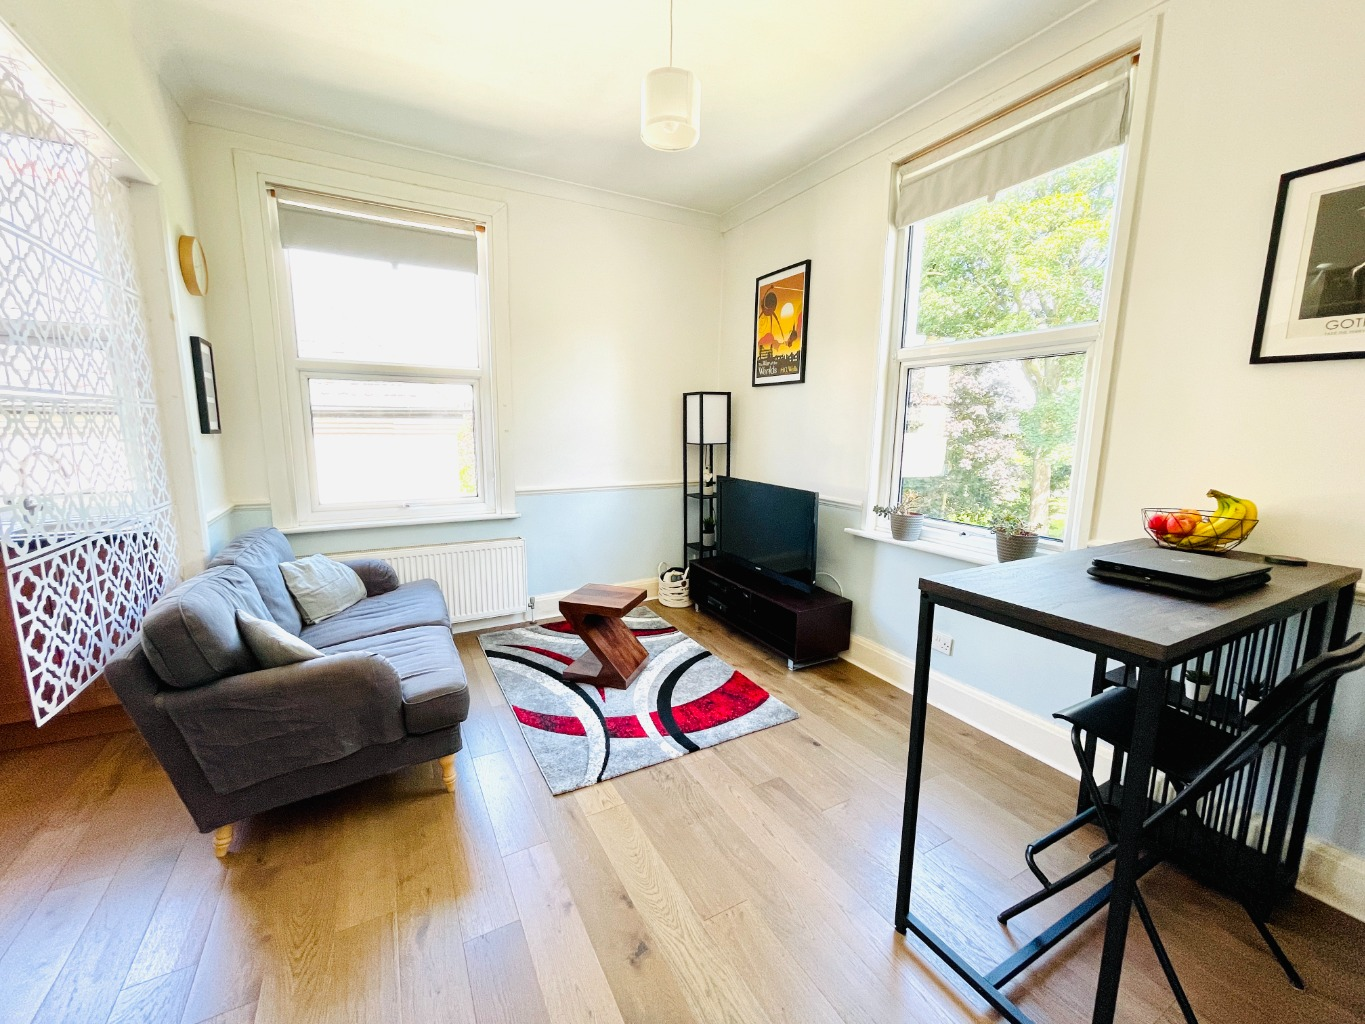 2 bed flat for sale in Eglinton Hill, London - Property Image 1